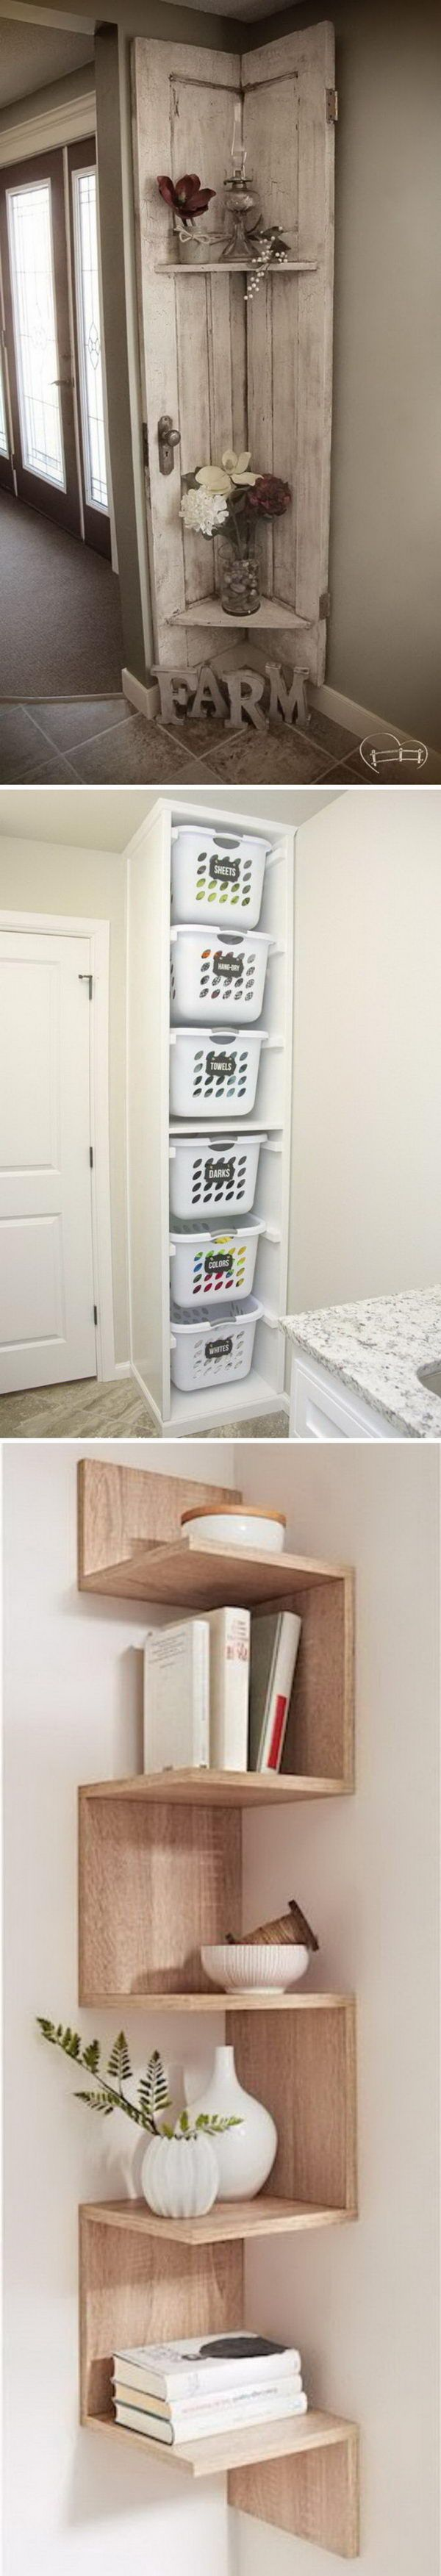 Creative Ways to Make Use Of Awkward Corners in Your Home.